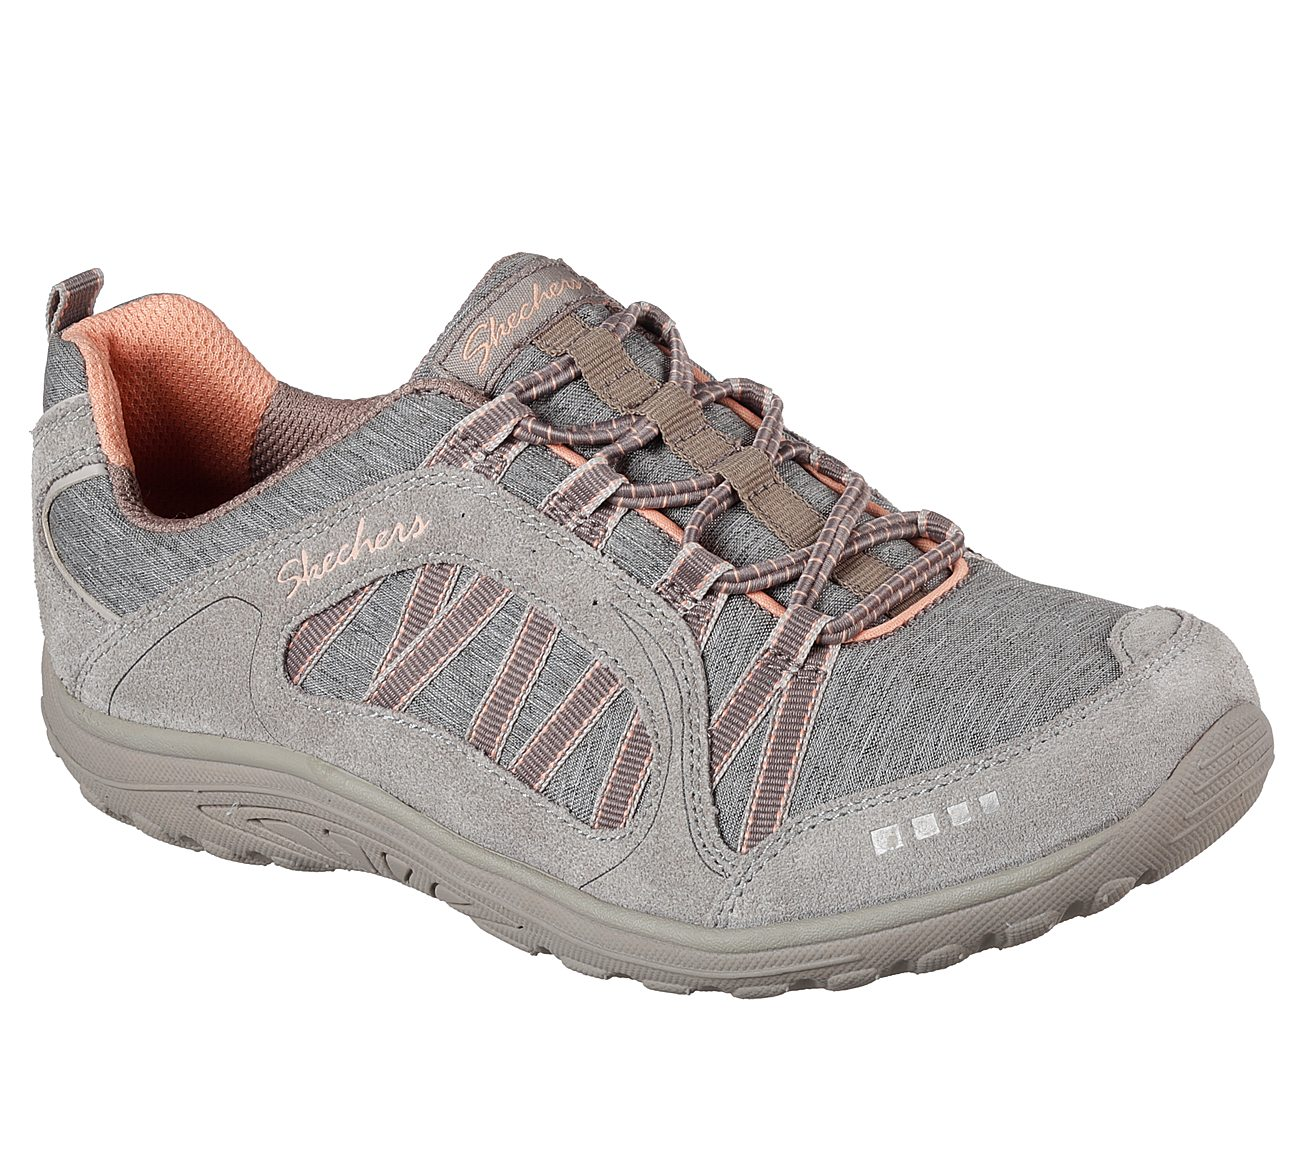 Buy Skechers Relaxed Fit Reggae Fest Escondido Comfort Shoes Shoes